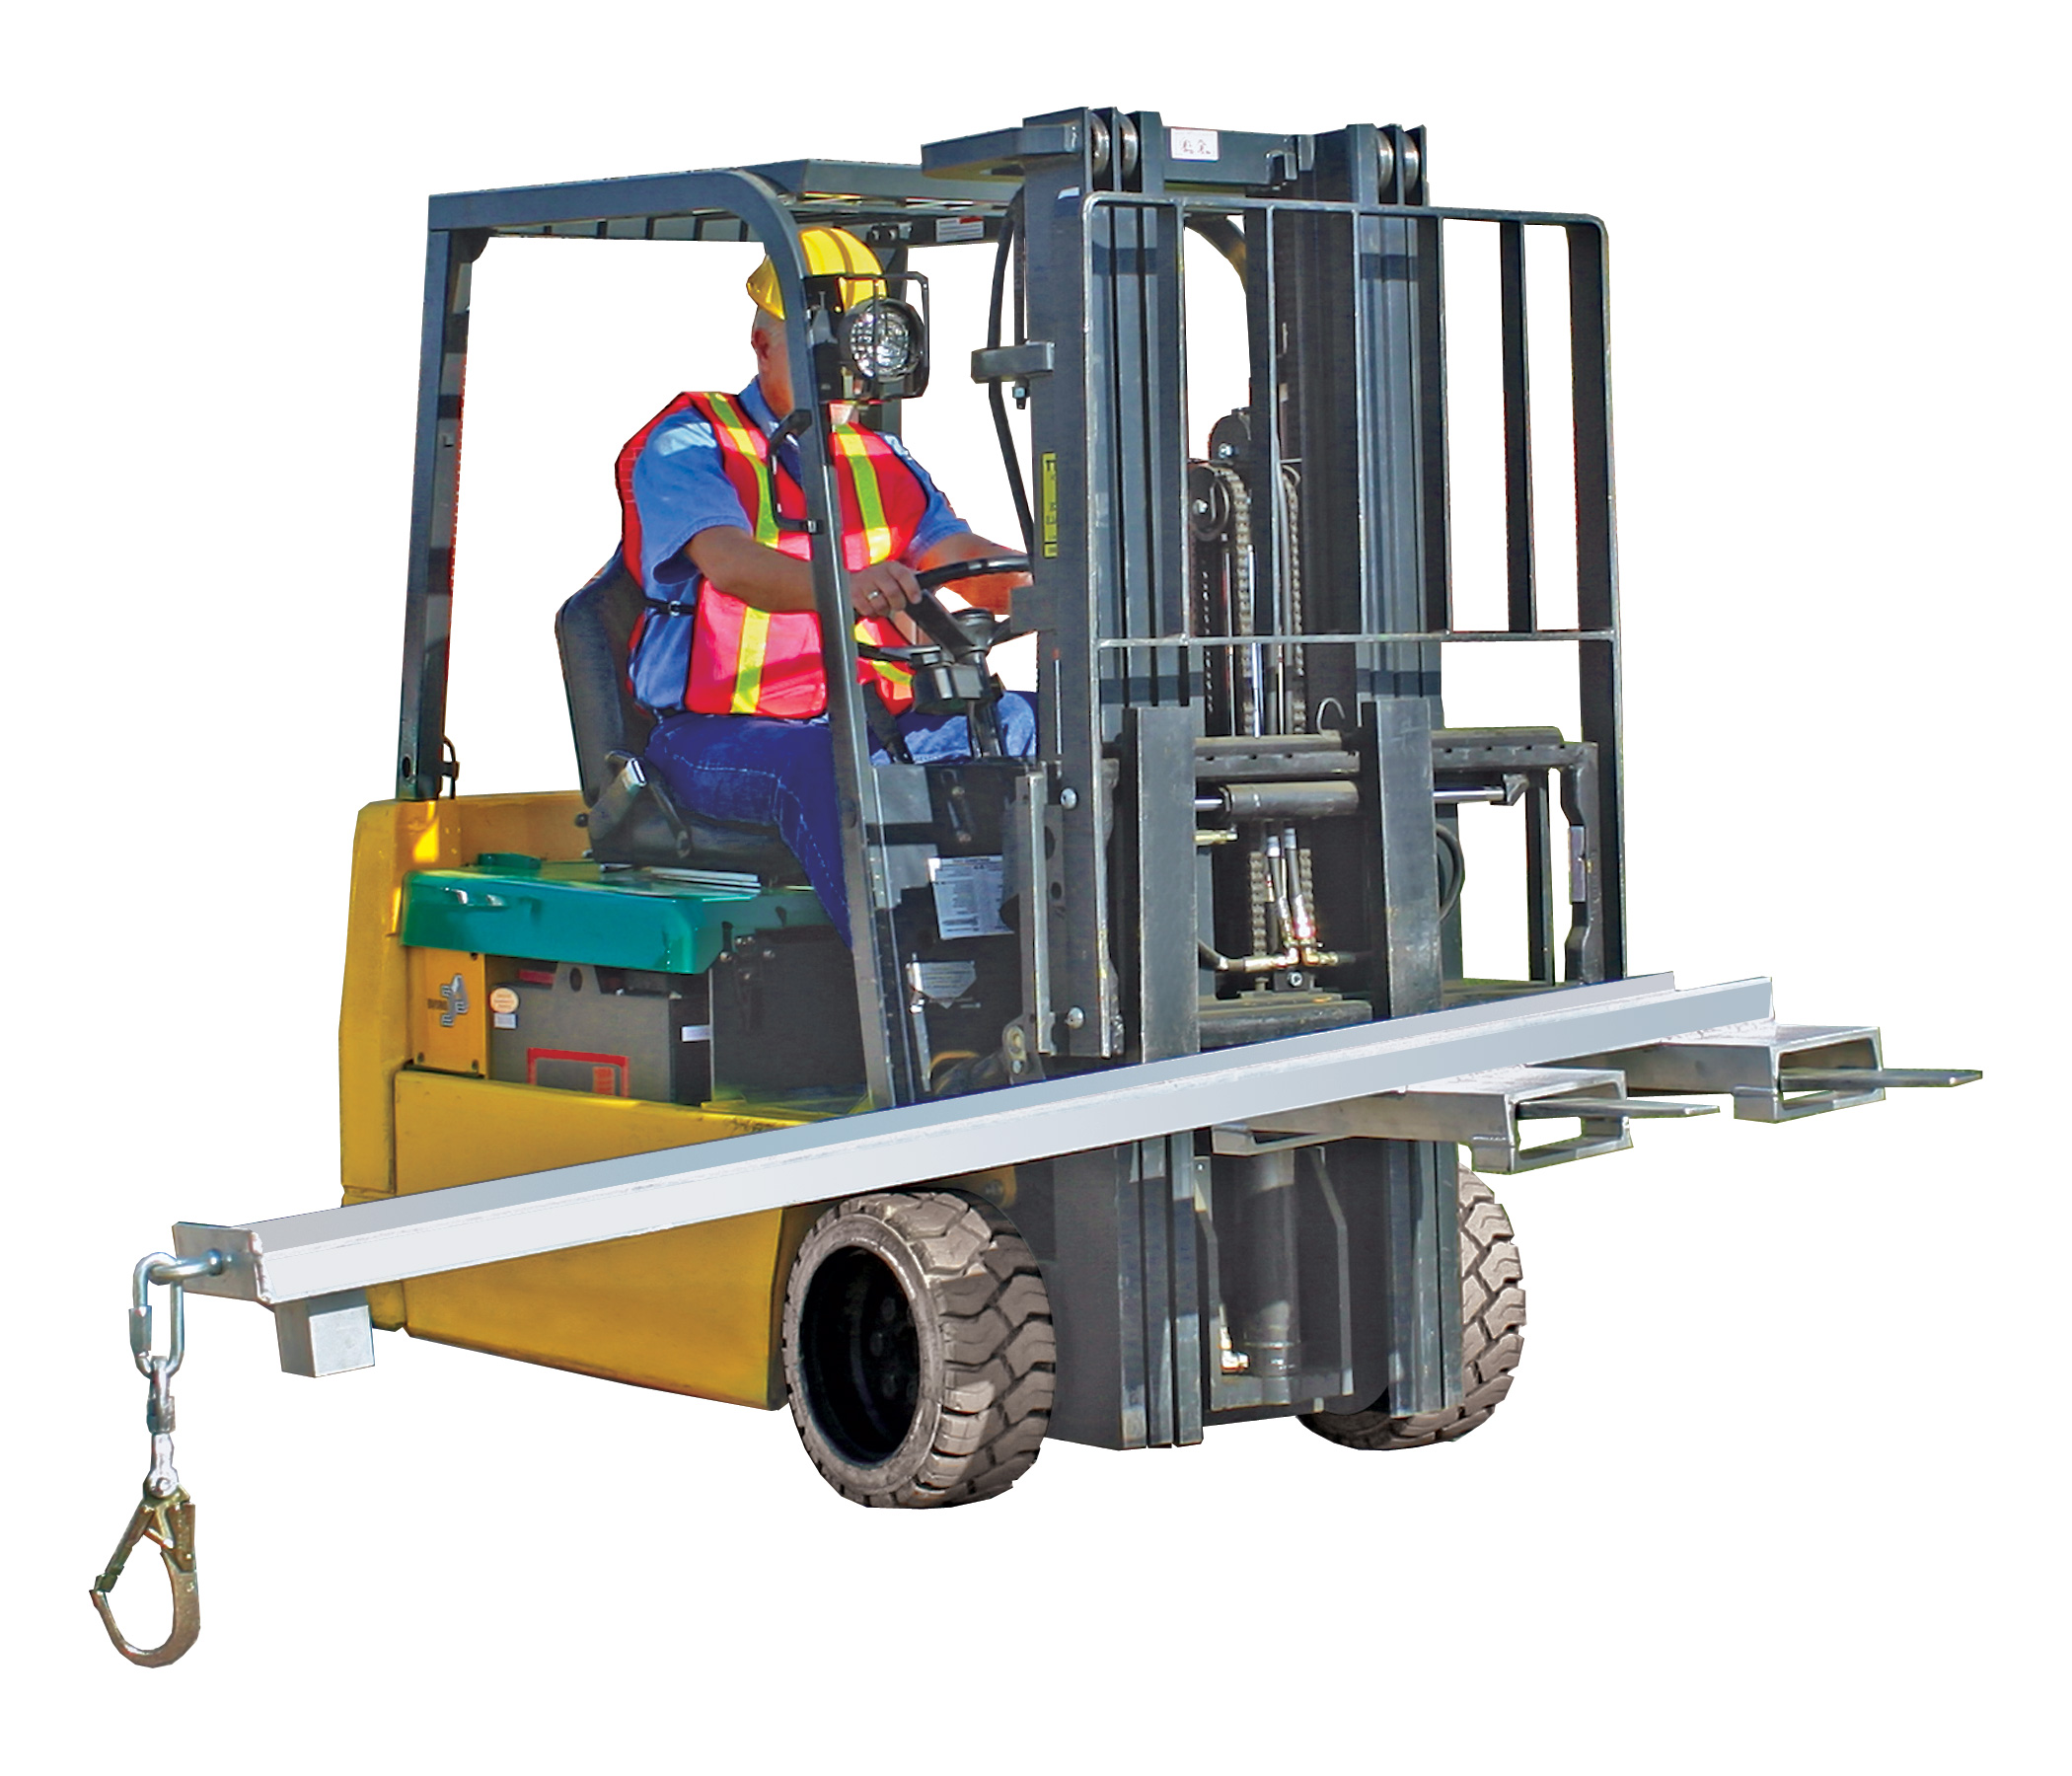 Aldon box car door opener forklift attachment for boxcars